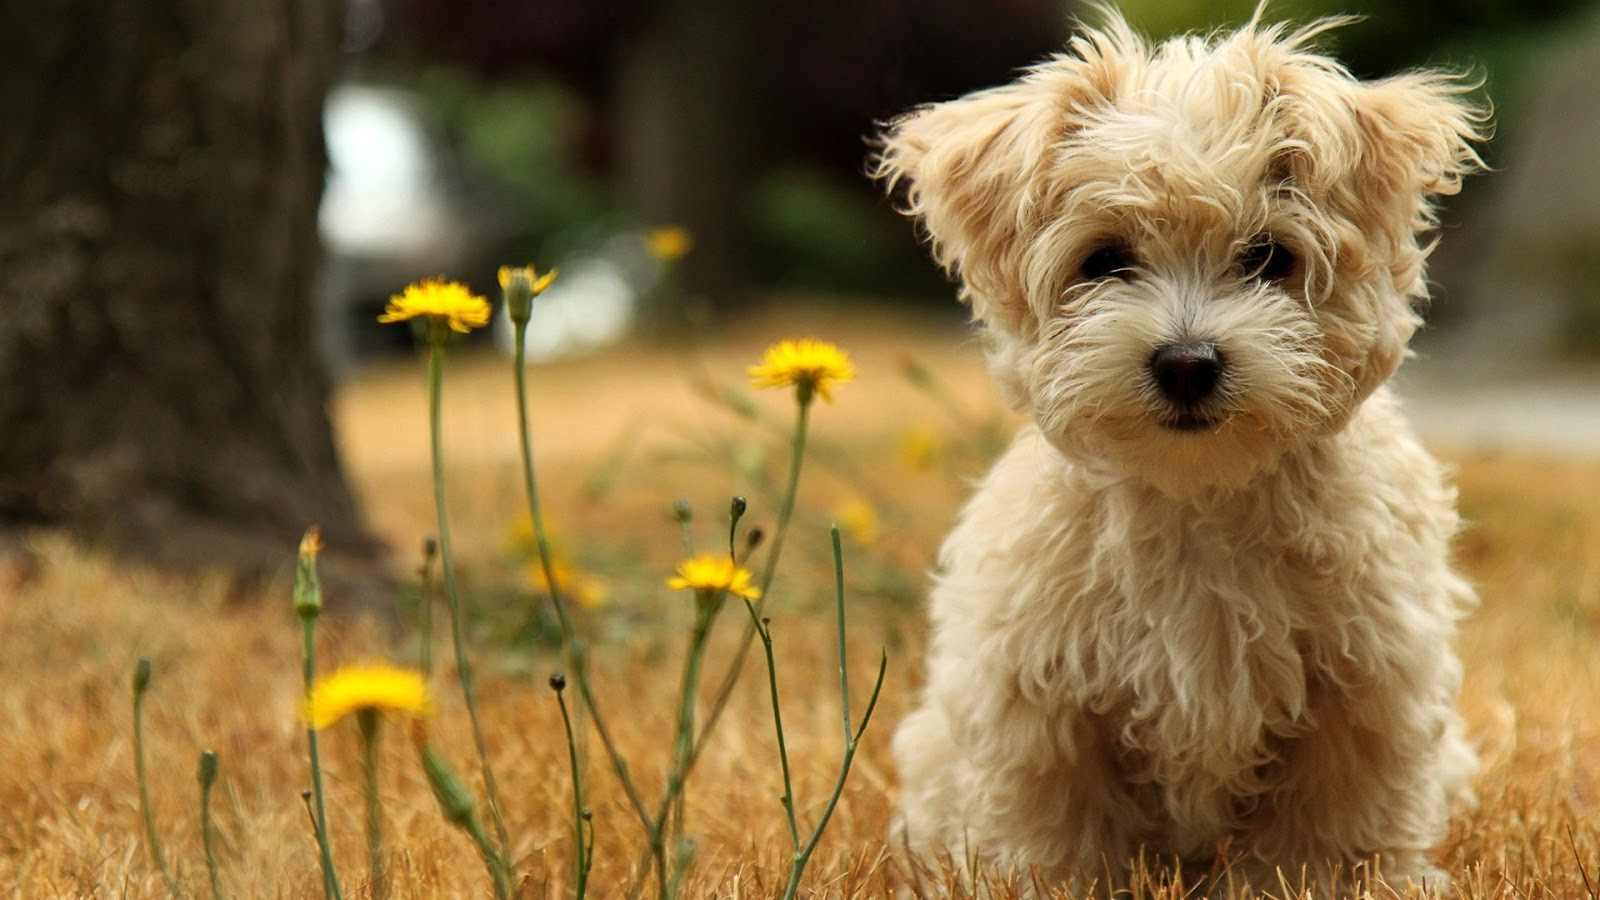 30 Cute baby animals (30 pics) | Amazing Creatures  |Cute Baby Dog Pictures